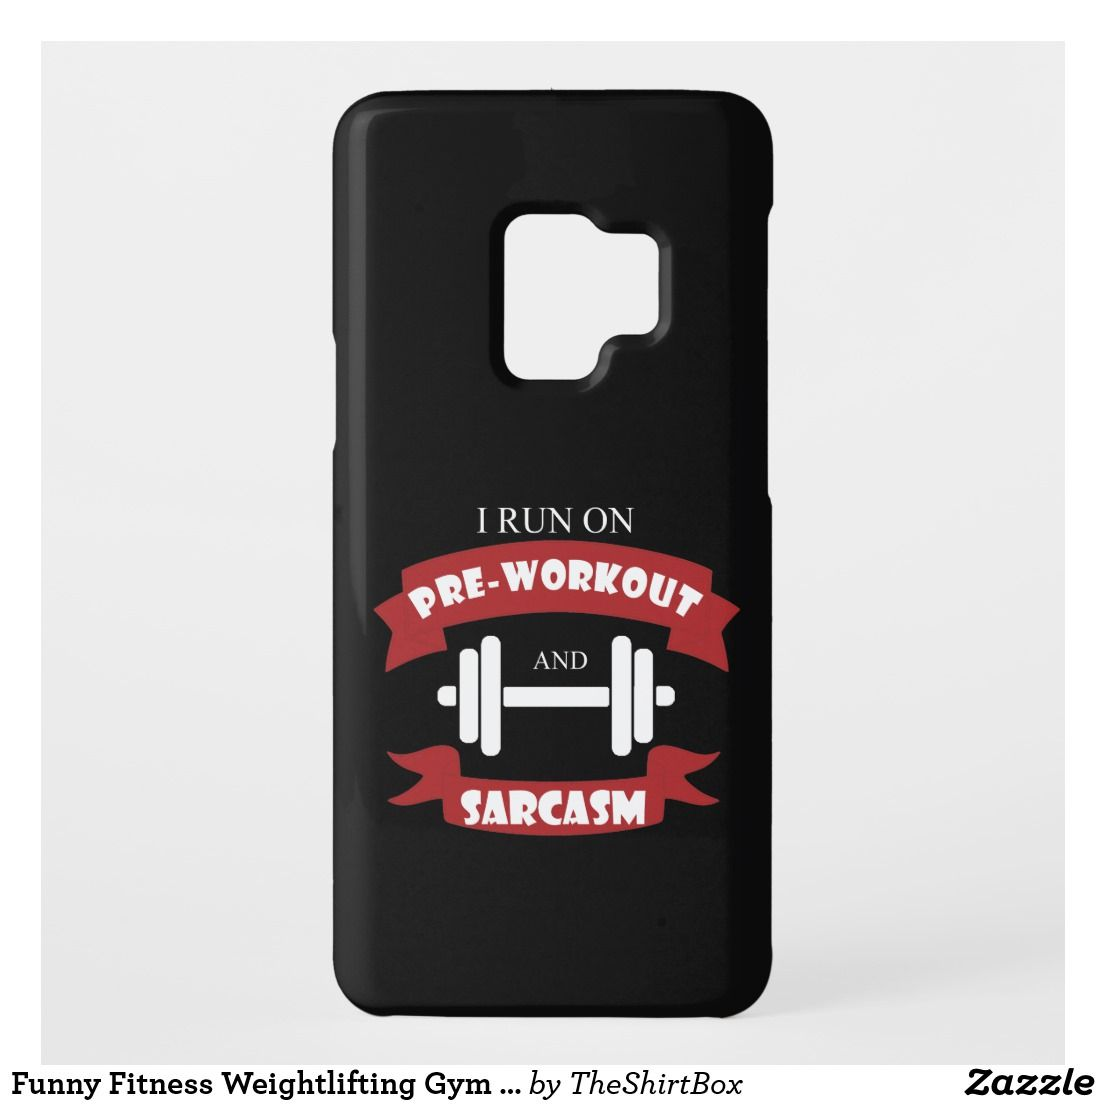 Funny Fitness Weightlifting Gym Quote Phone Case Zazzle Com Weightlifting Gym